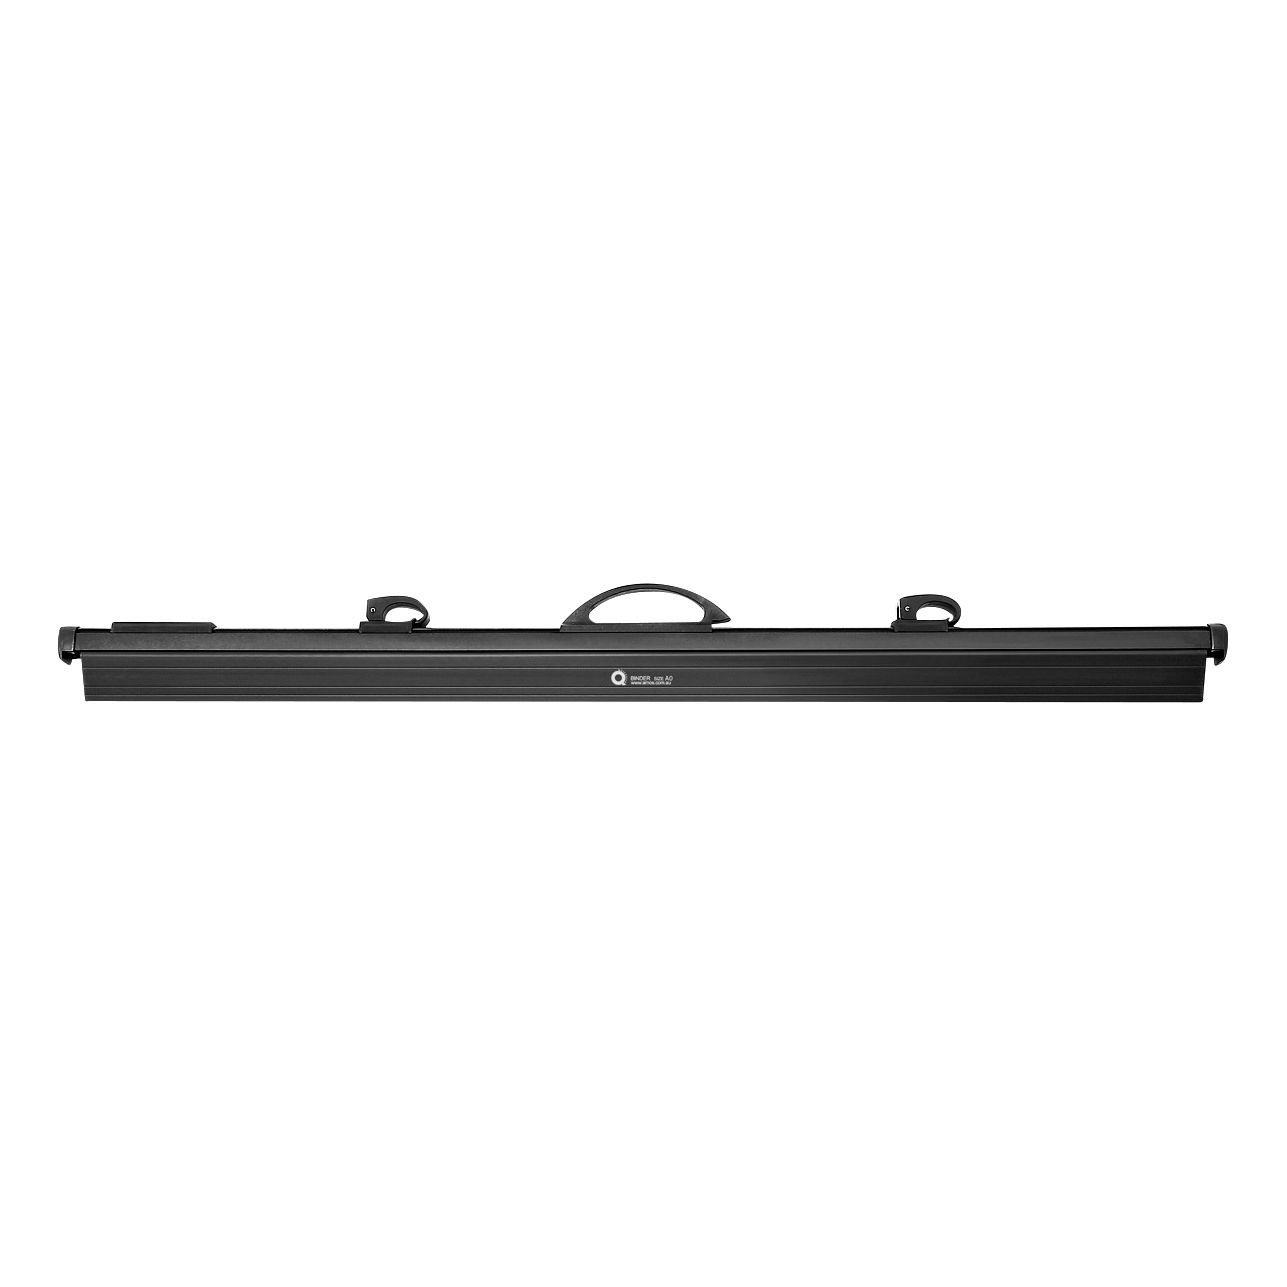 Arnos Hang-A-Plan QuickFile Frnt Load Binder Quick Rele Lever Full-length Clamp W950mm A0 Black Ref D202B